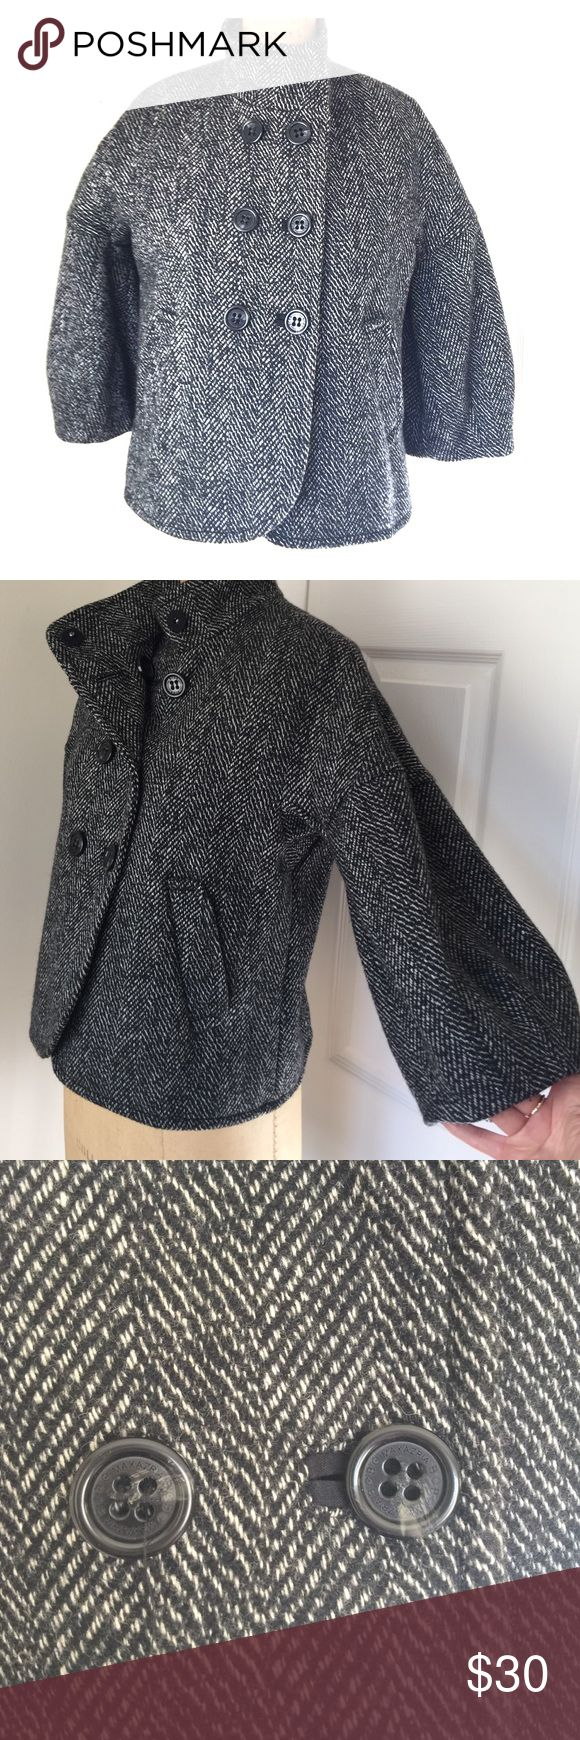 "BCBGMaxazria wool jacket Black and white herringbone short wool jacket by BCBGMaxazria! Looks great with black high waisted pants or skirt, 3/4 bell sleeves, beautifully lined, welt buttonholes. 21"" length from back neck seam to hem. BCBGMaxAzria Jackets & Coats"